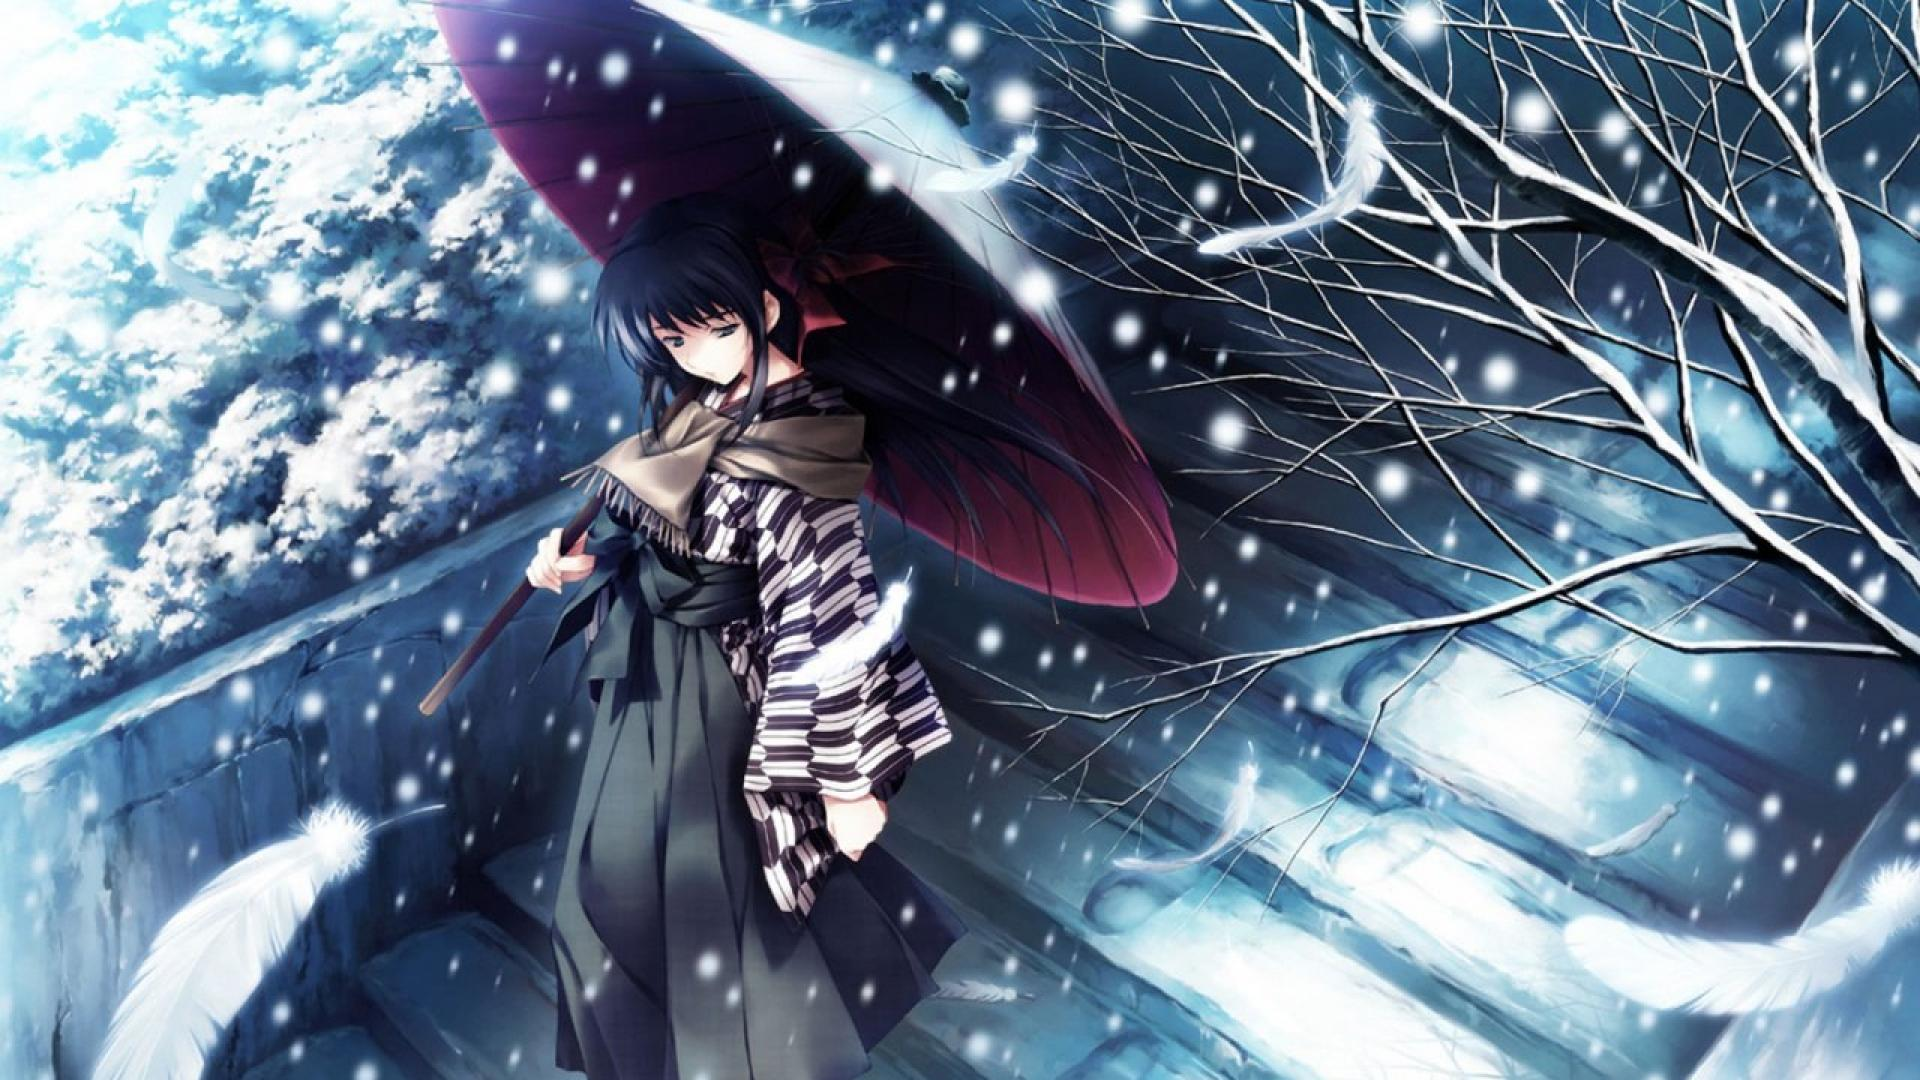 Winter Anime Wallpapers 1920x1080